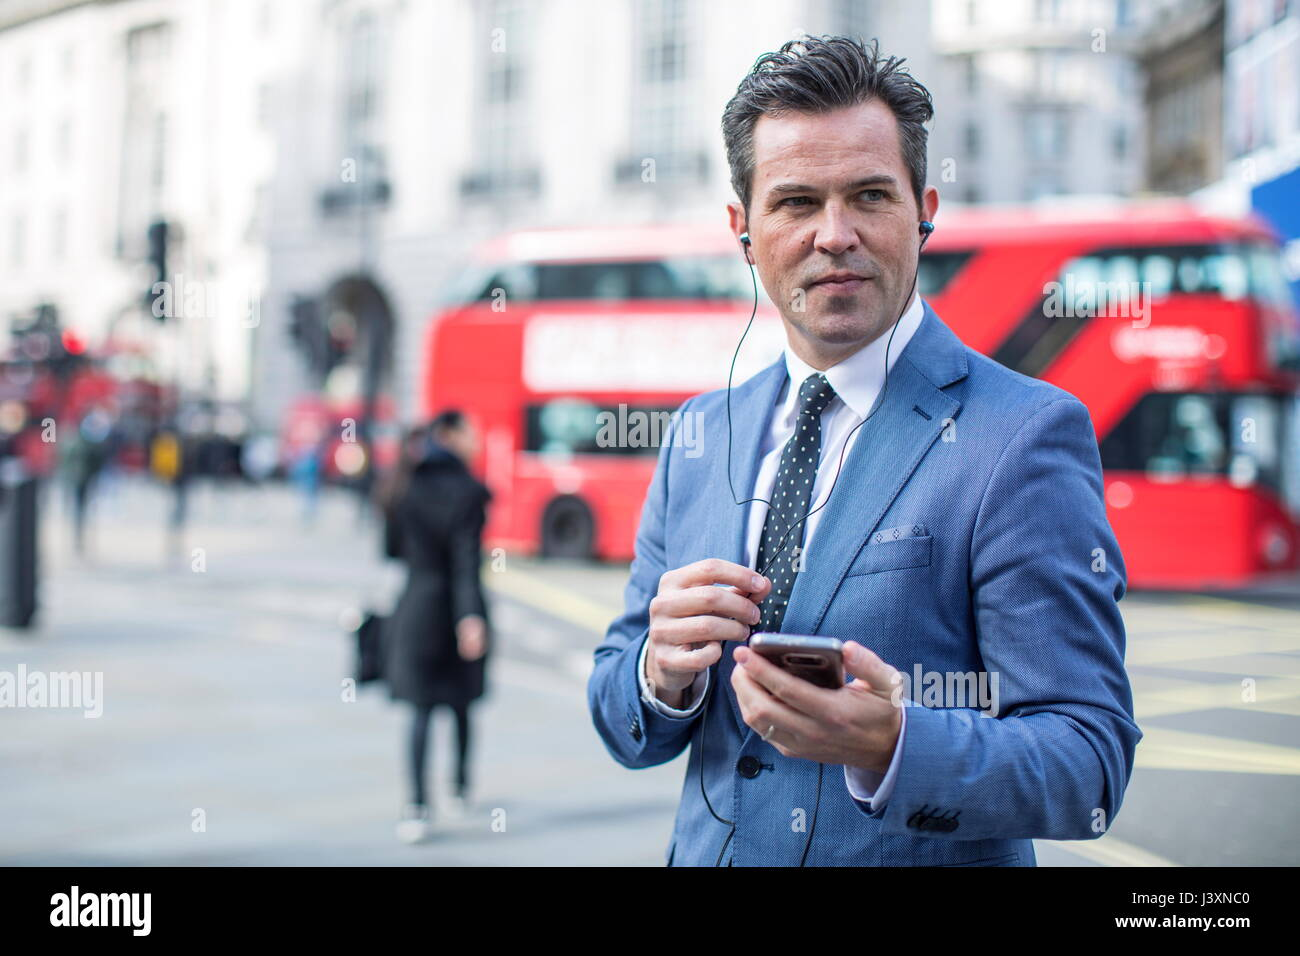 Businessmen in street with smartphone and earbuds, London, UK - Stock Image